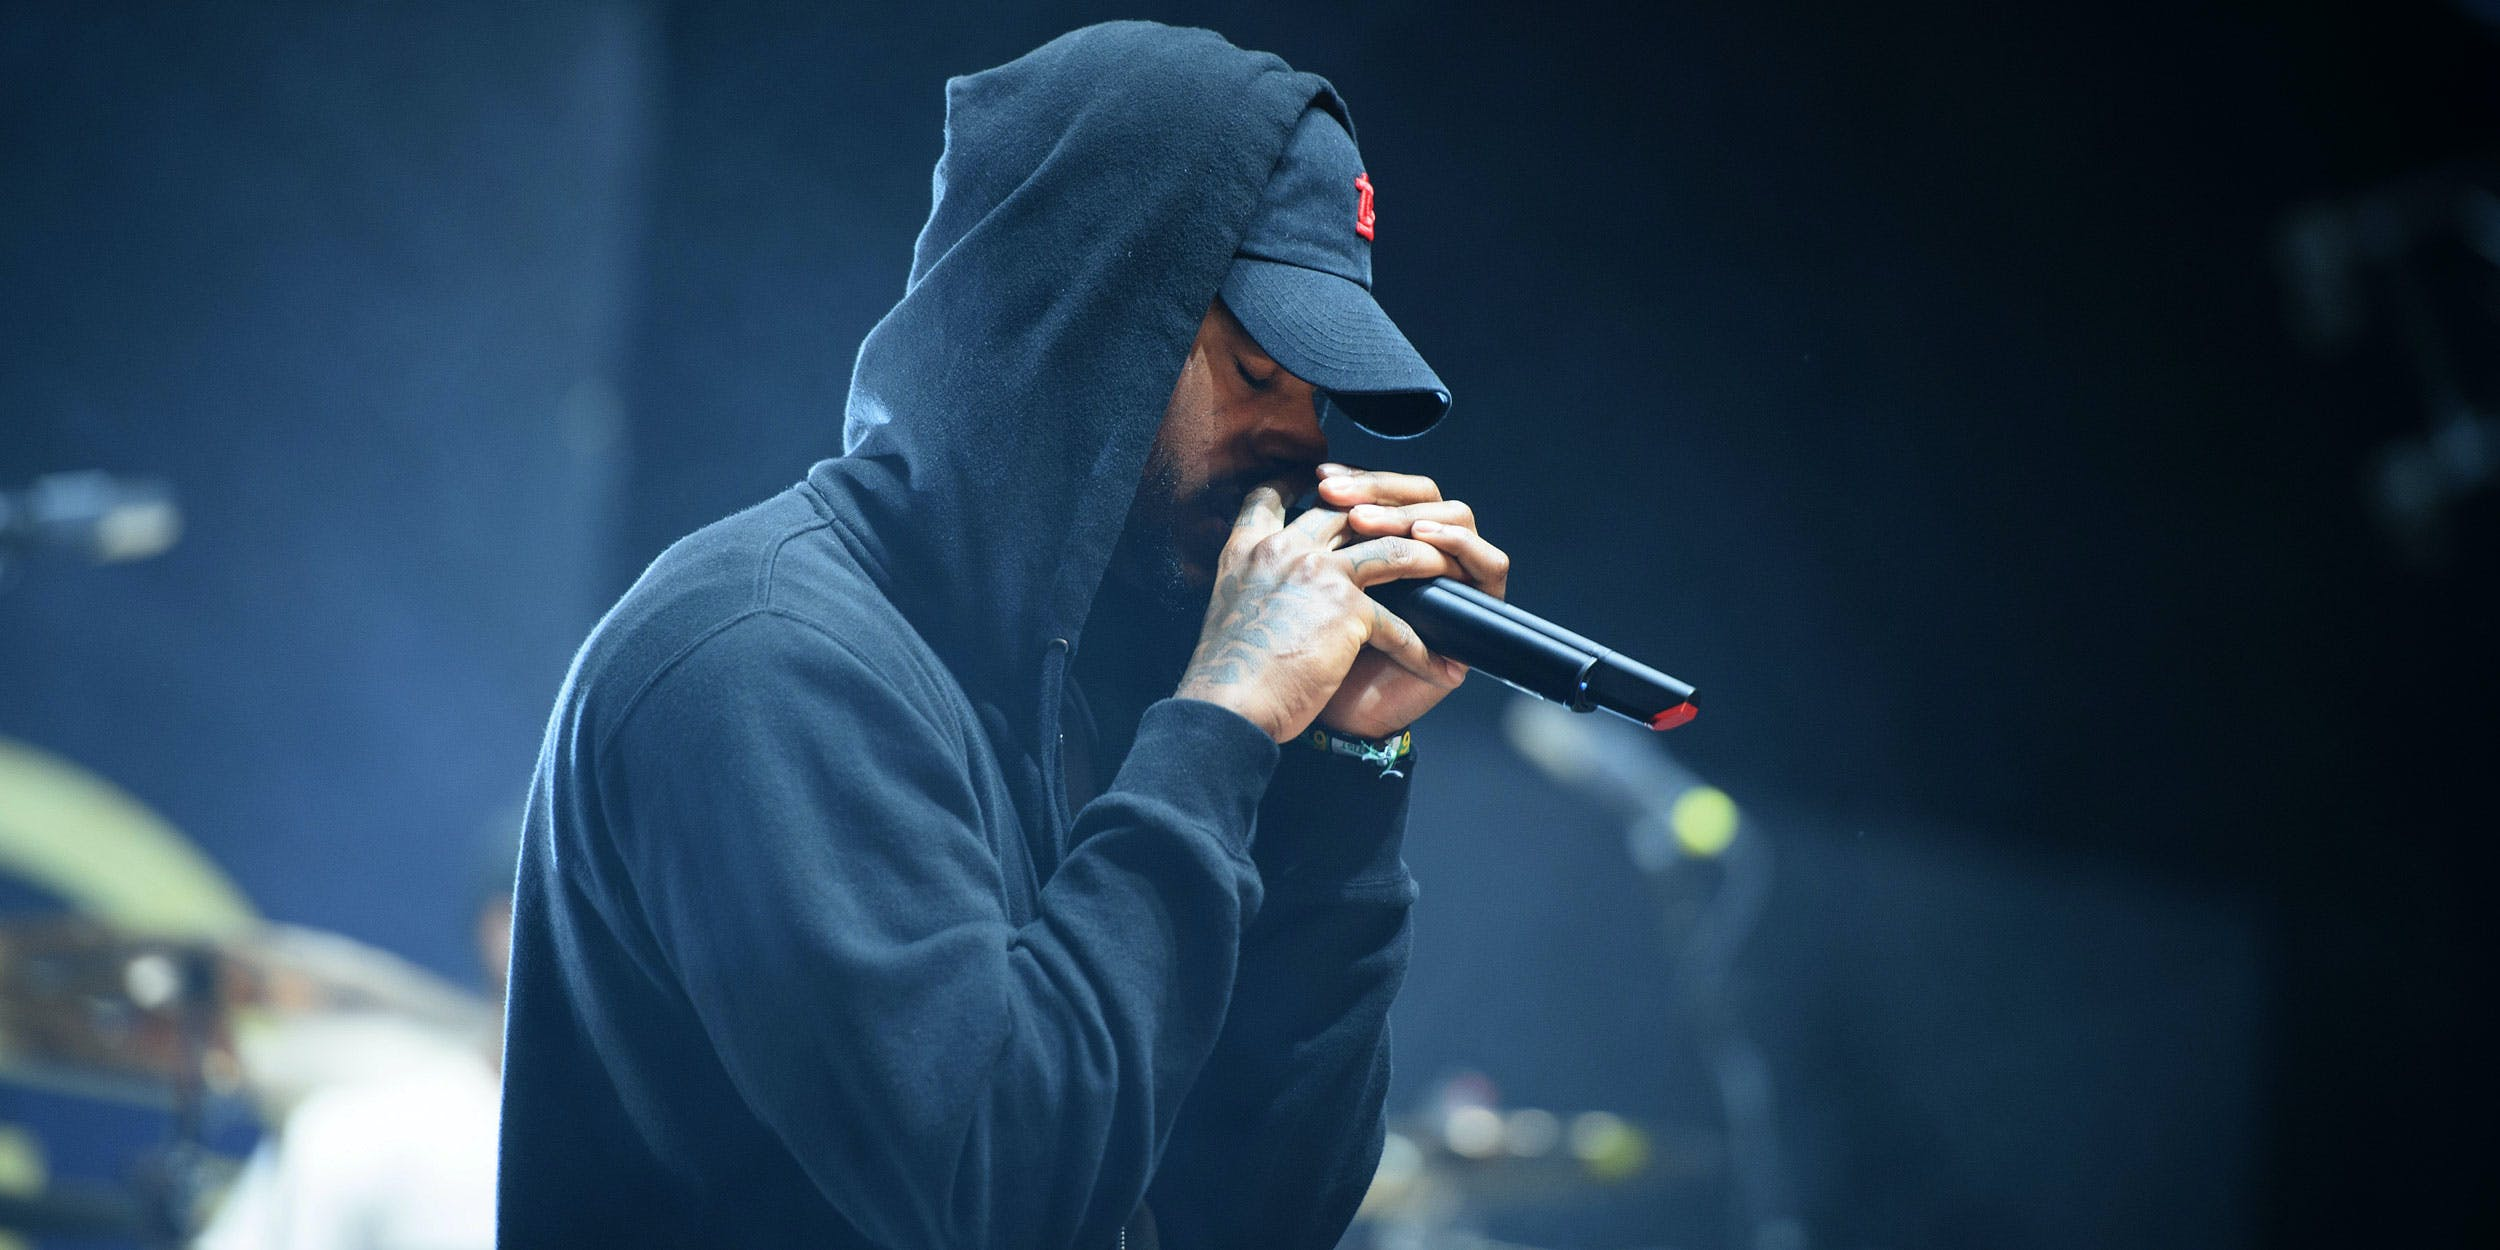 Bryson Tiller says depression impacted his album True to Self